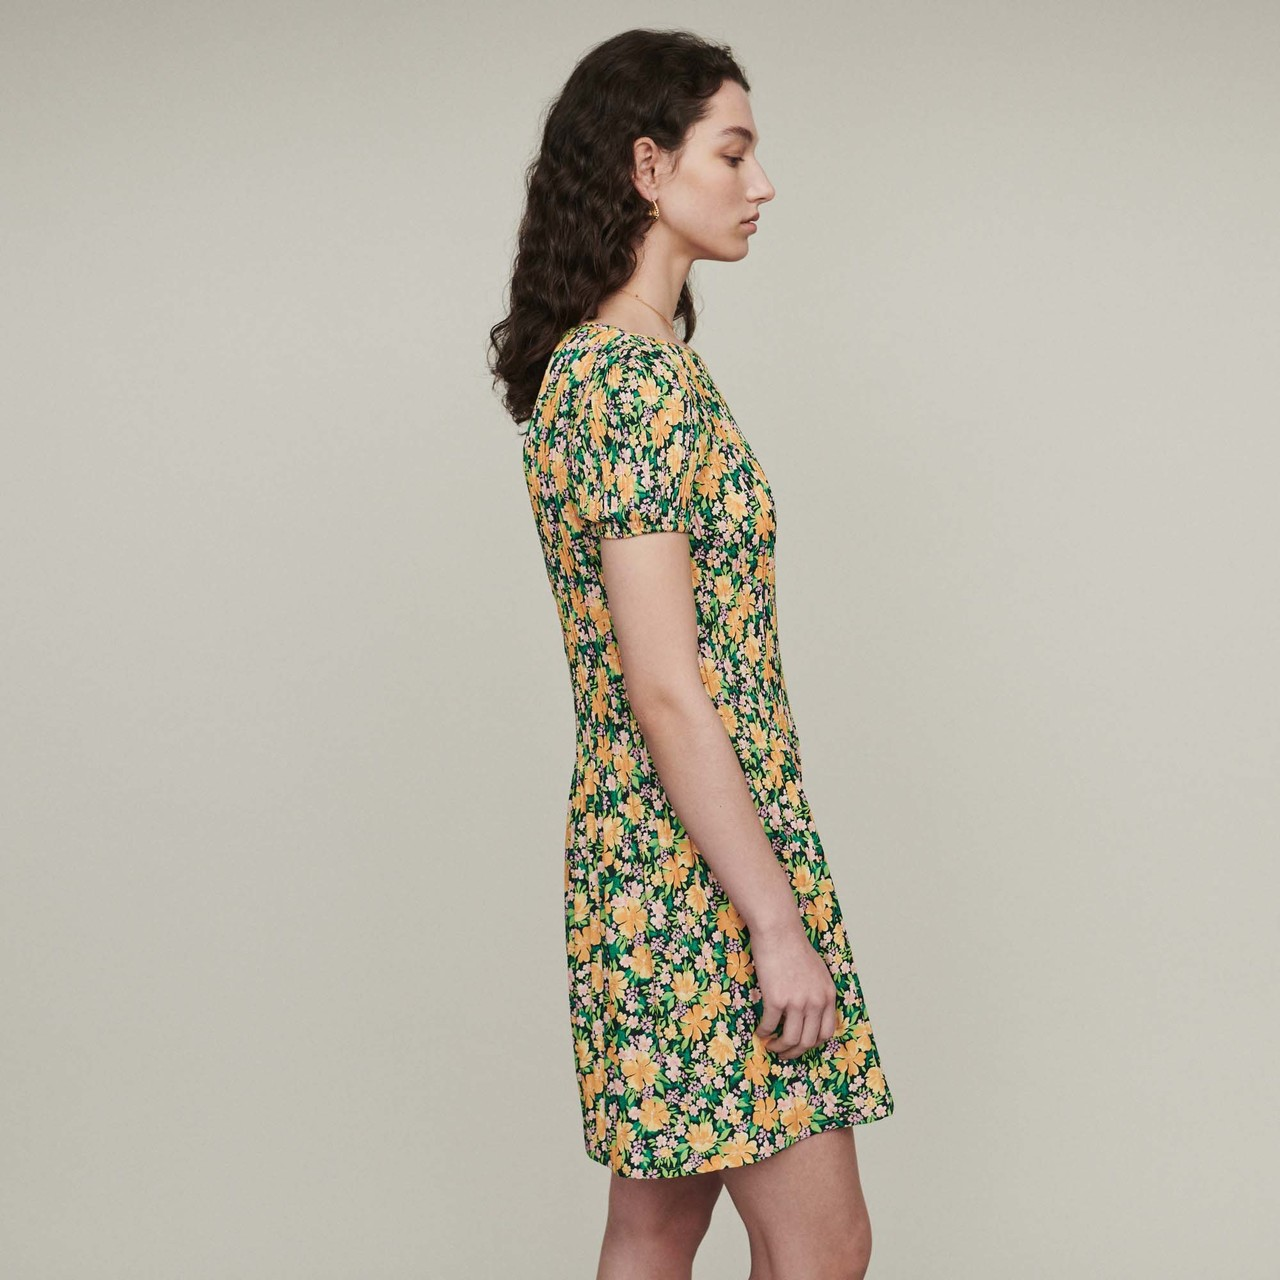 Pleated dress in floral print - Print